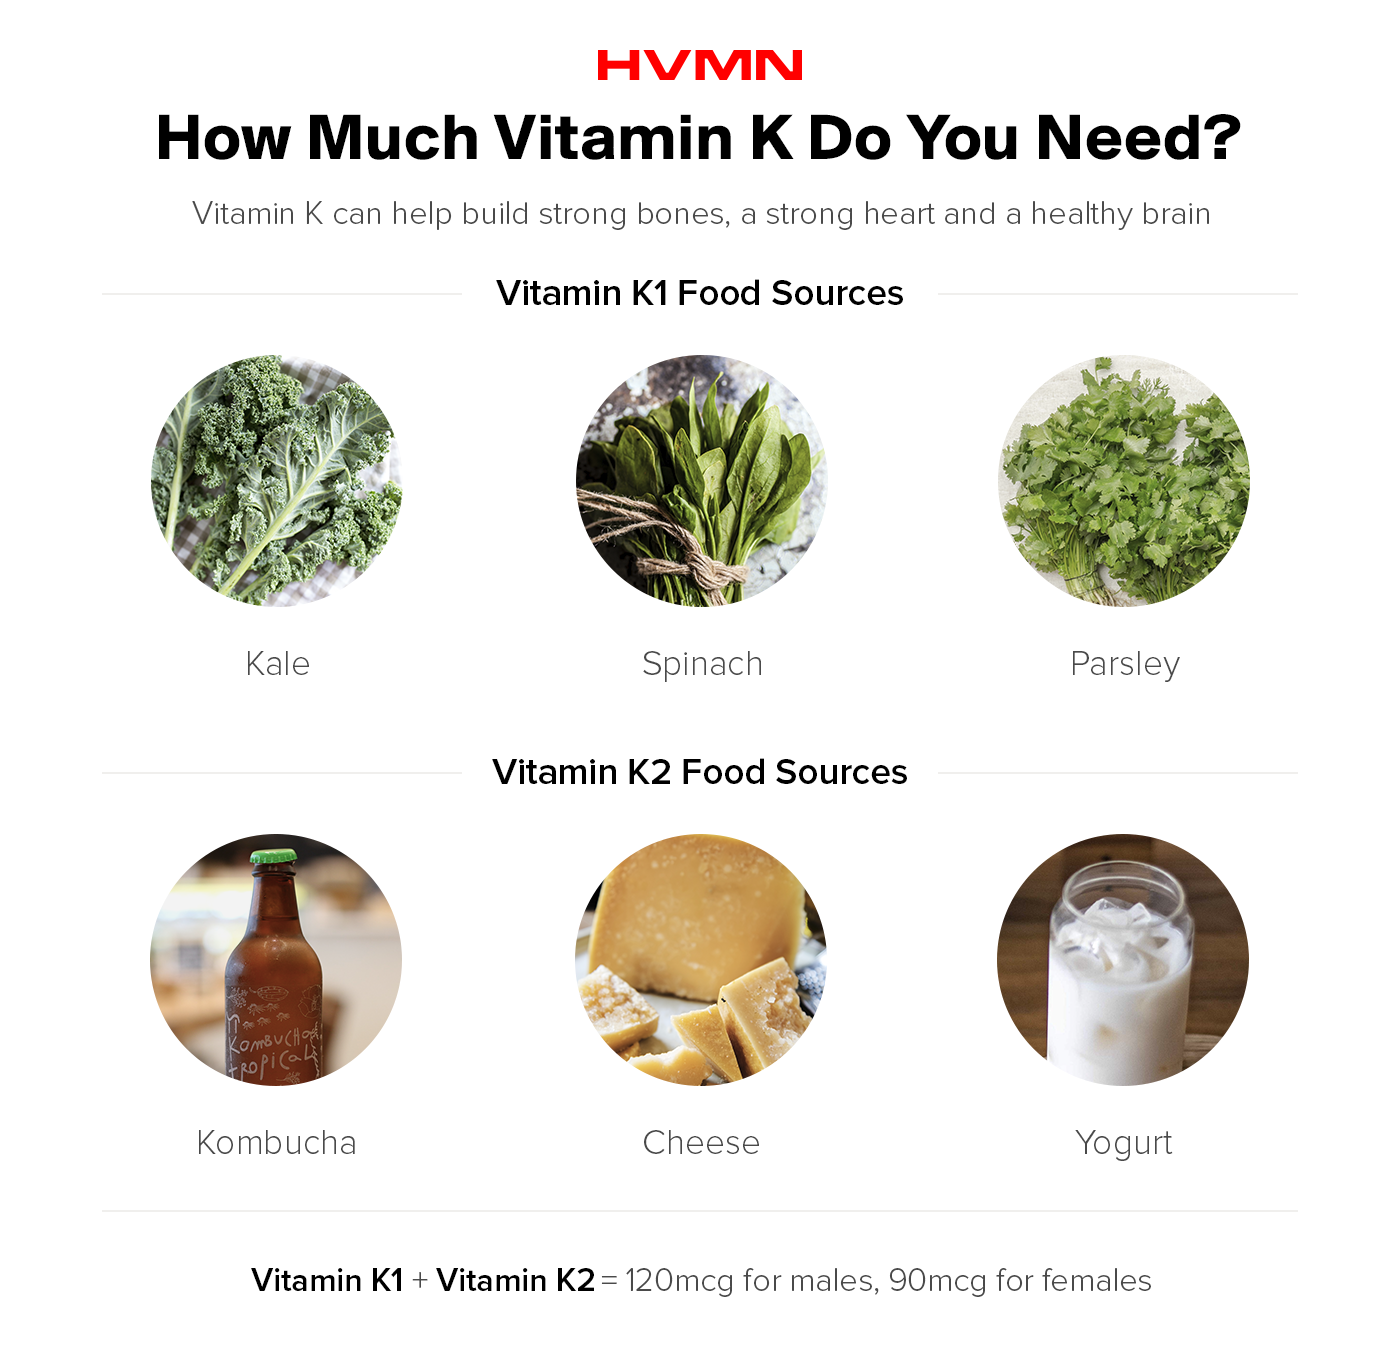 Image describes recommendations for how much Vitamin K is needed.